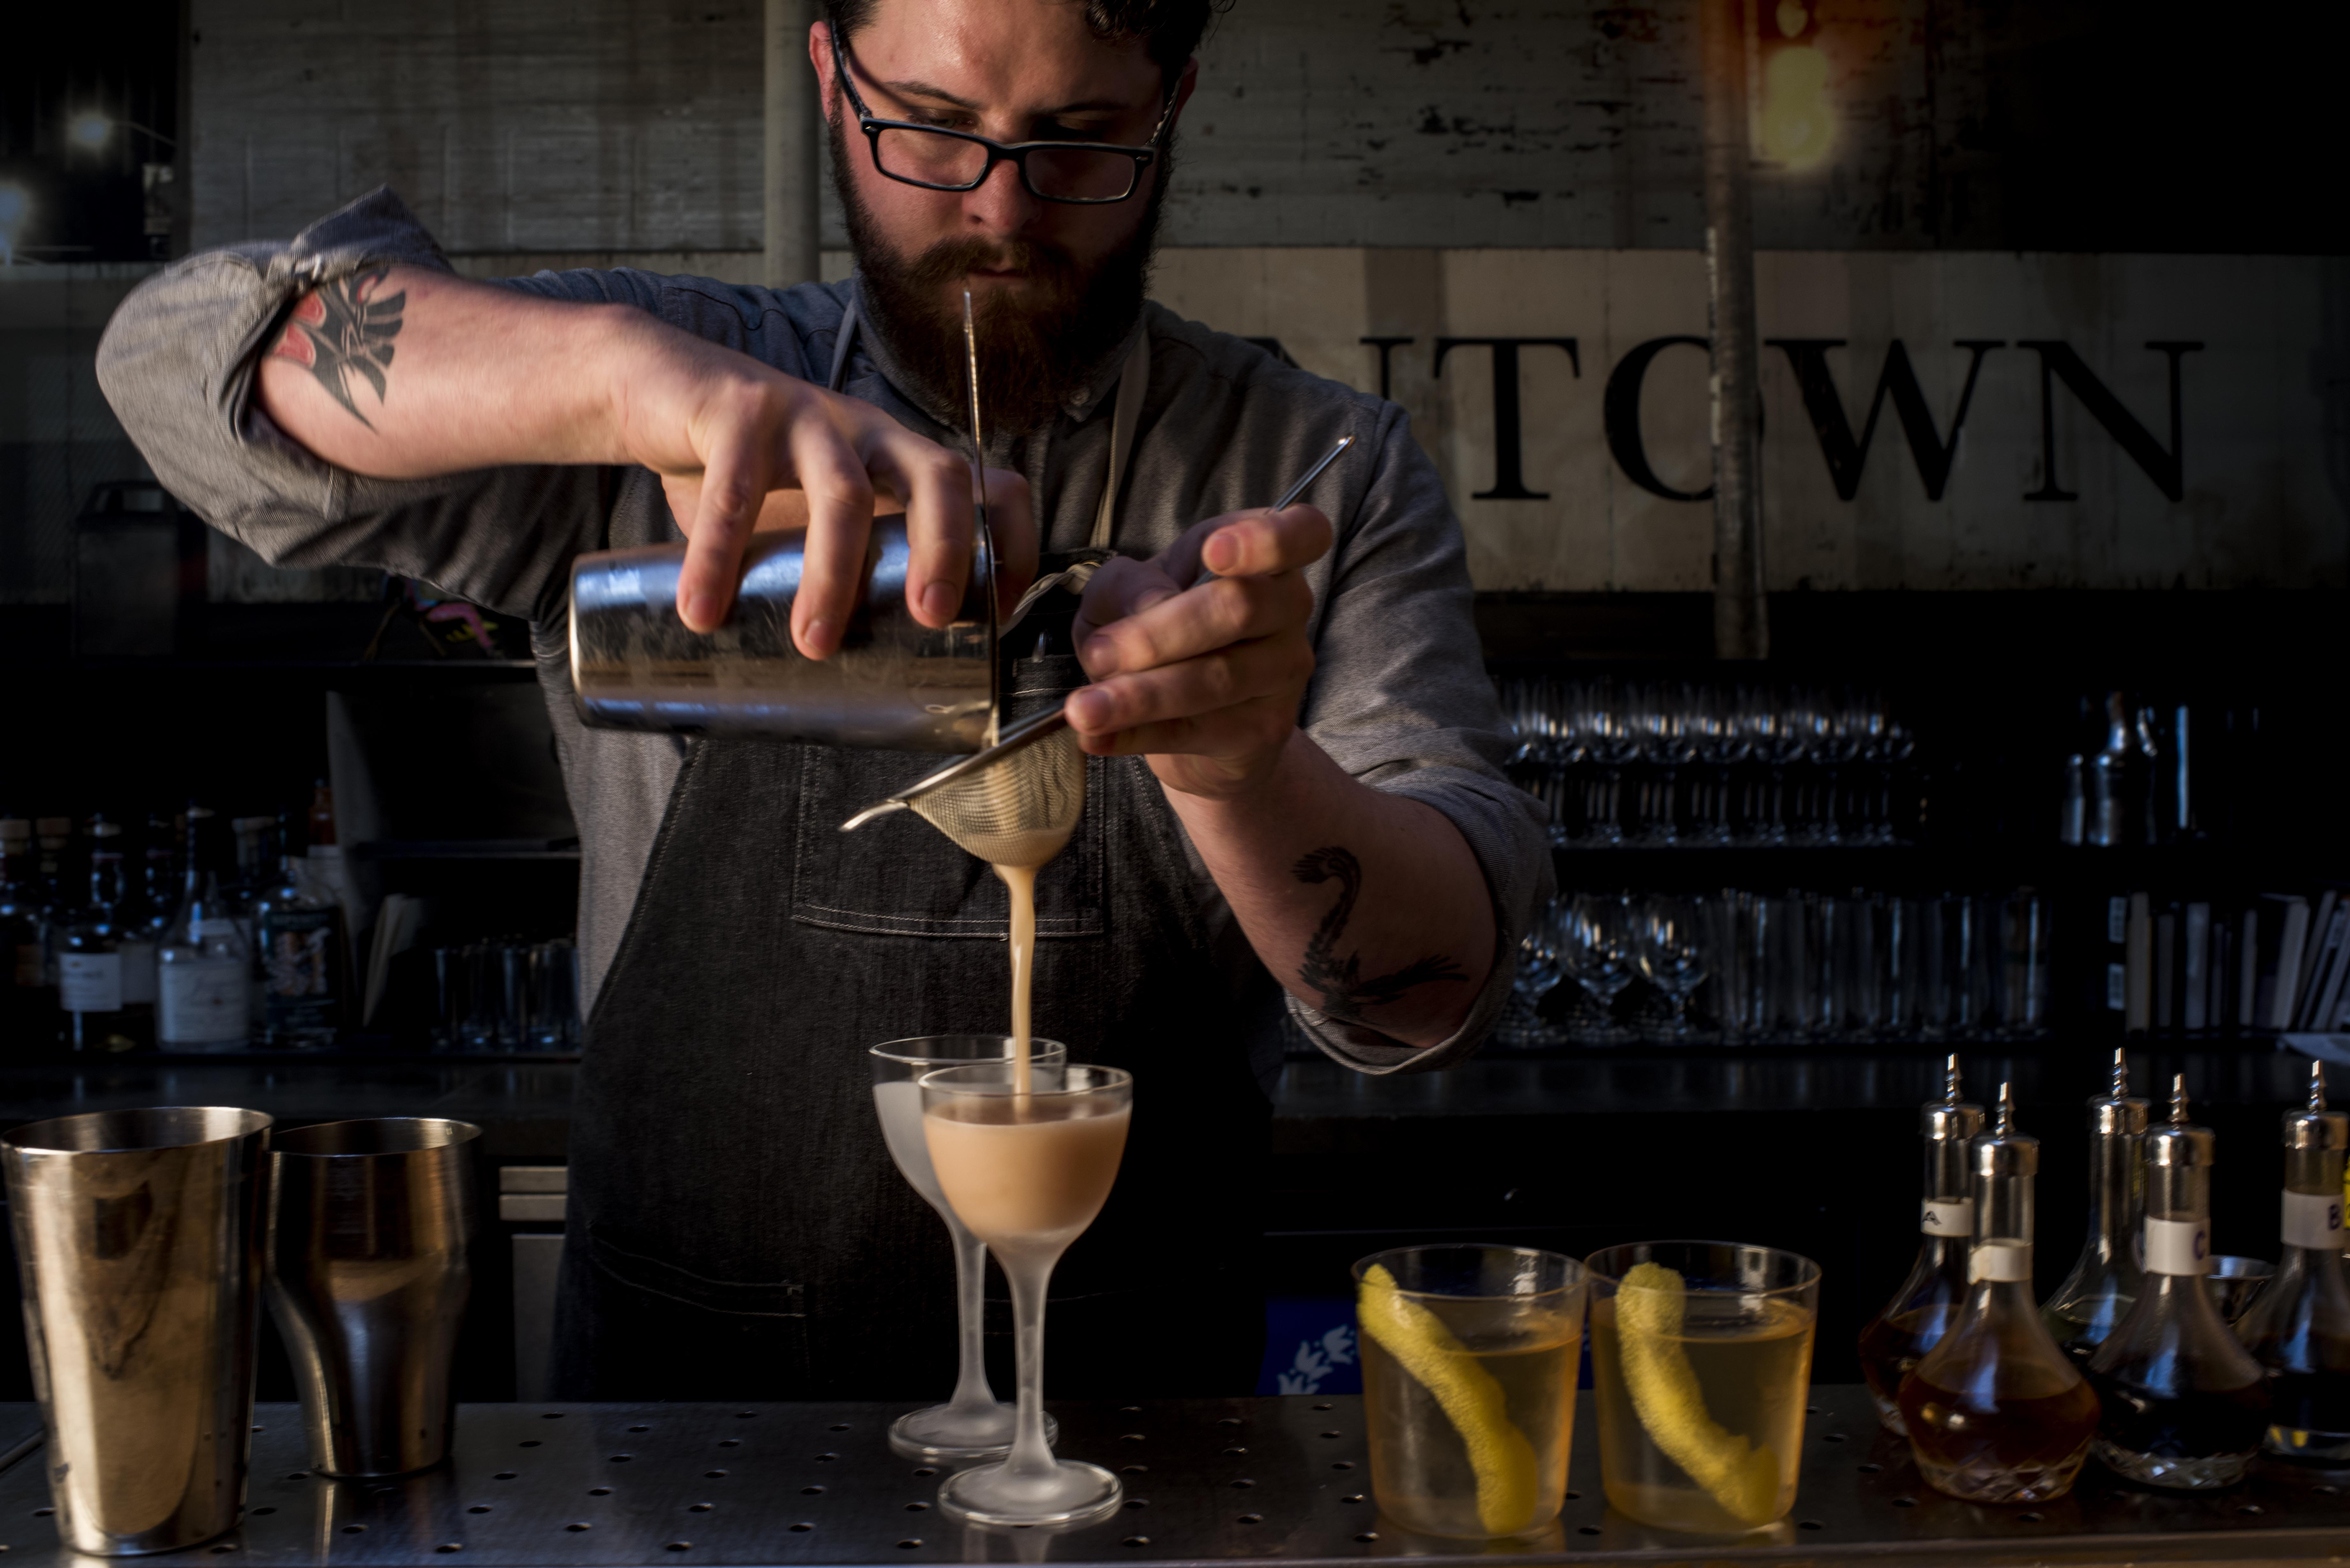 Bartender Evan Williams creates Brandy Daisy with colleagues at Bar Agricole in San Francisco, California Wednesday, April 8, 2015.